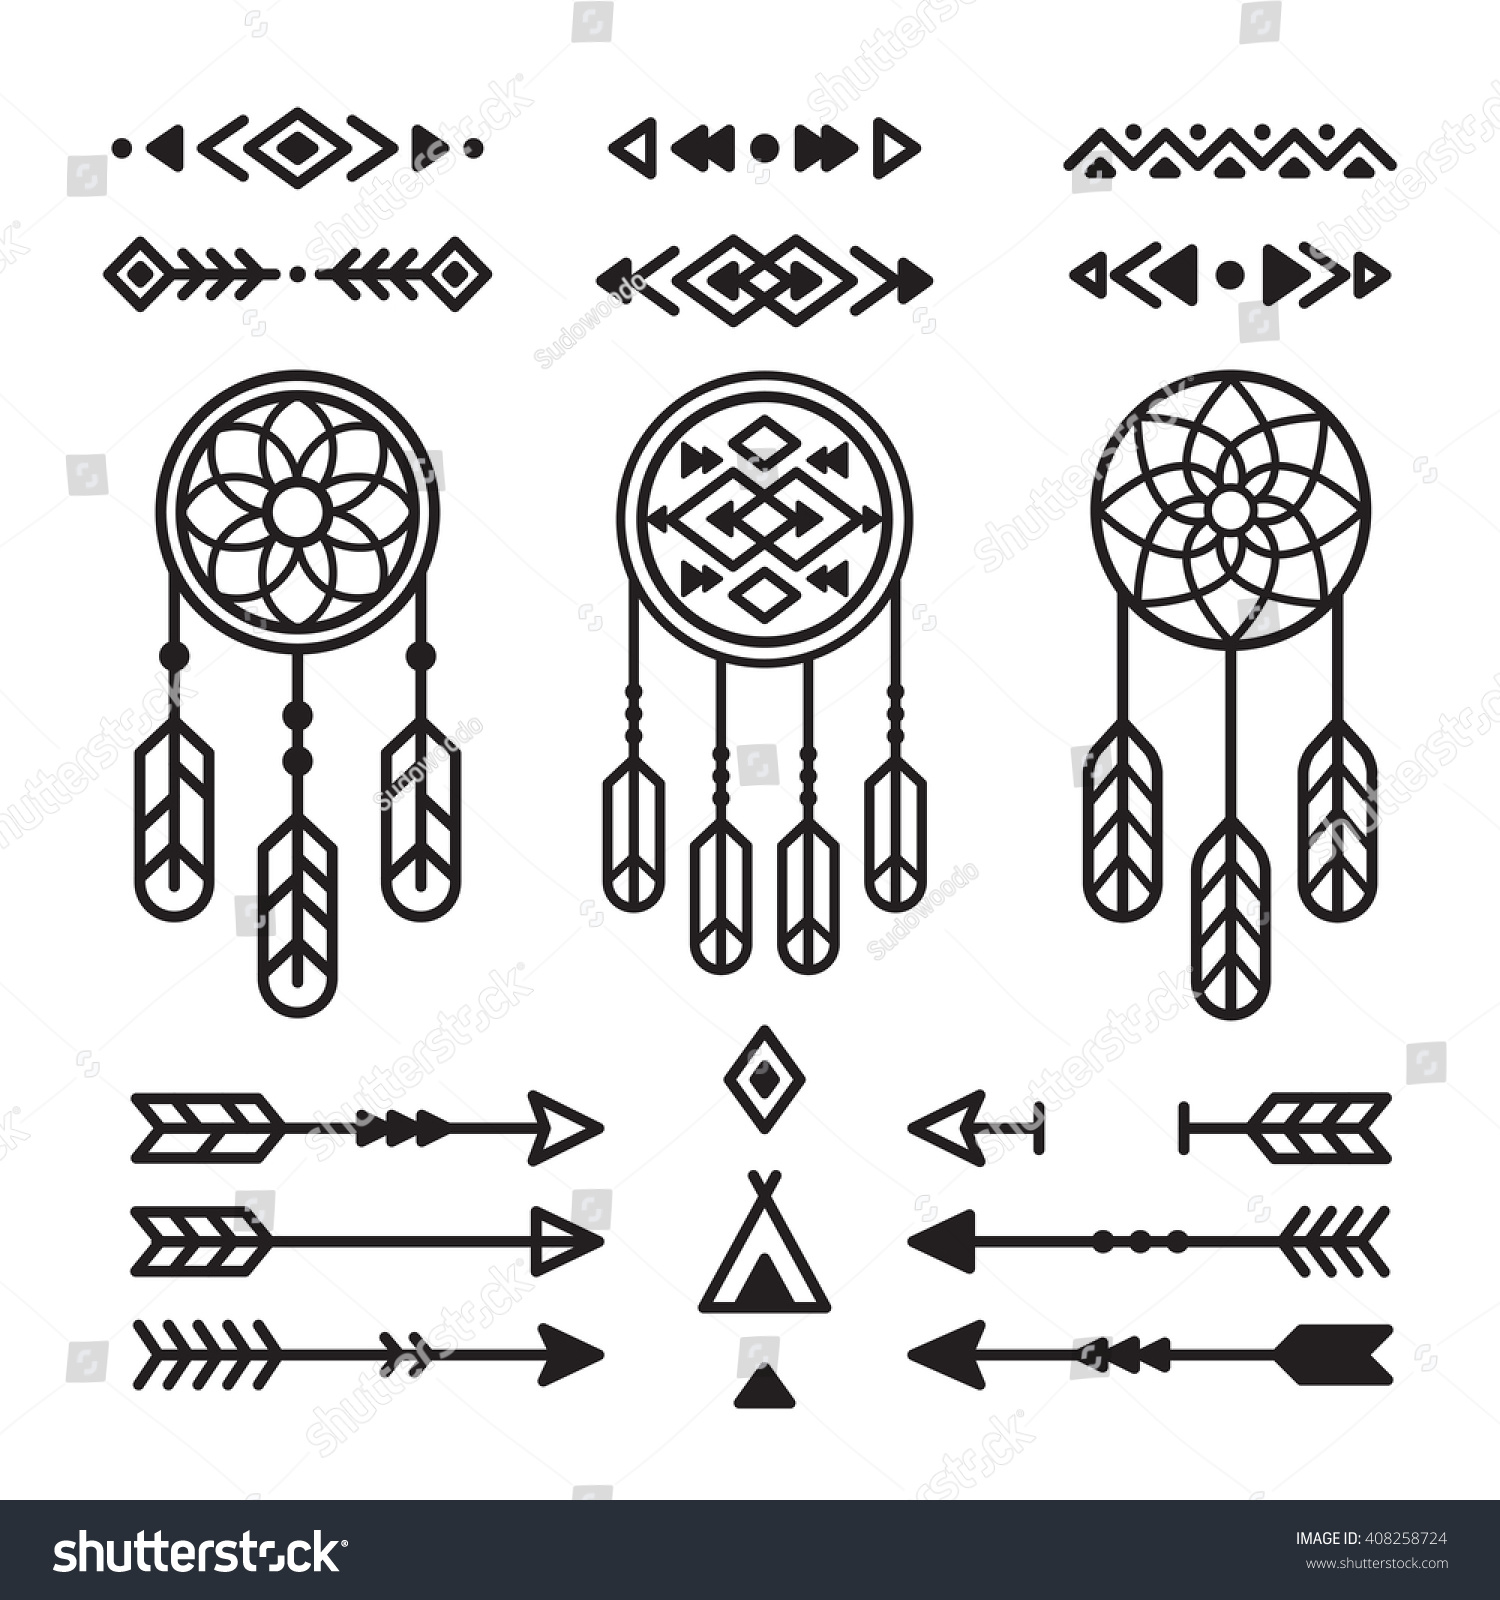 Native american ornaments - Native American Indian Design Elements Set Borders Arrows Dream Catchers Ornaments And